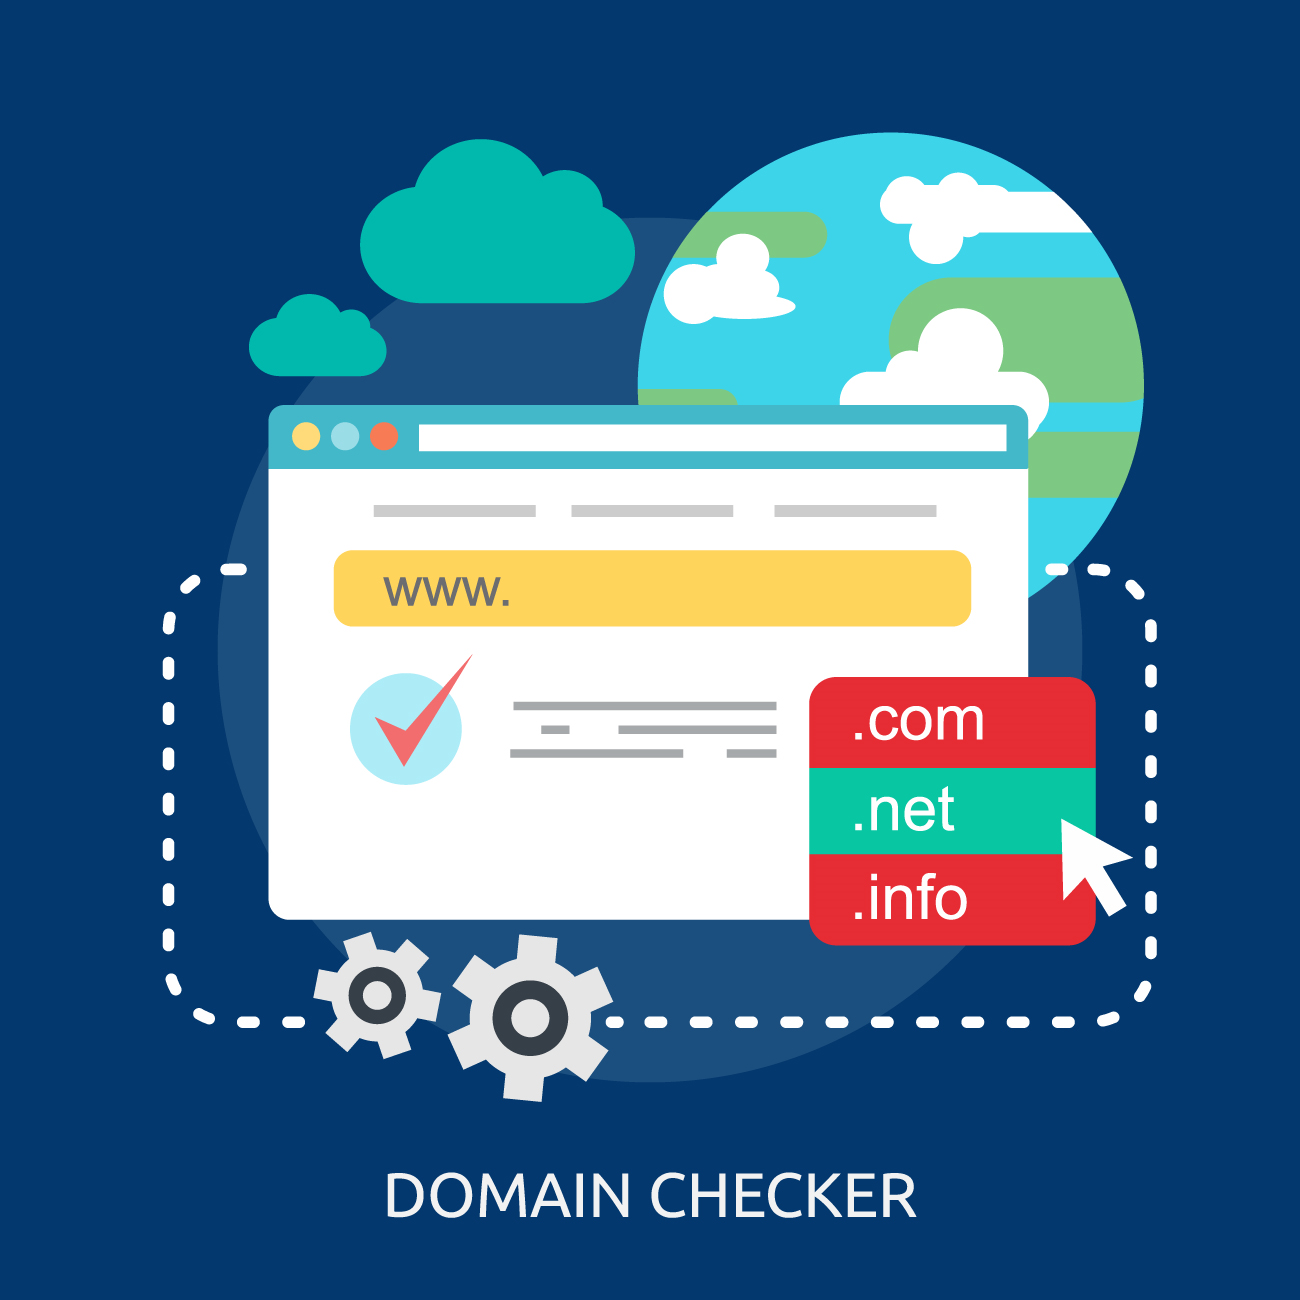 Domain checker